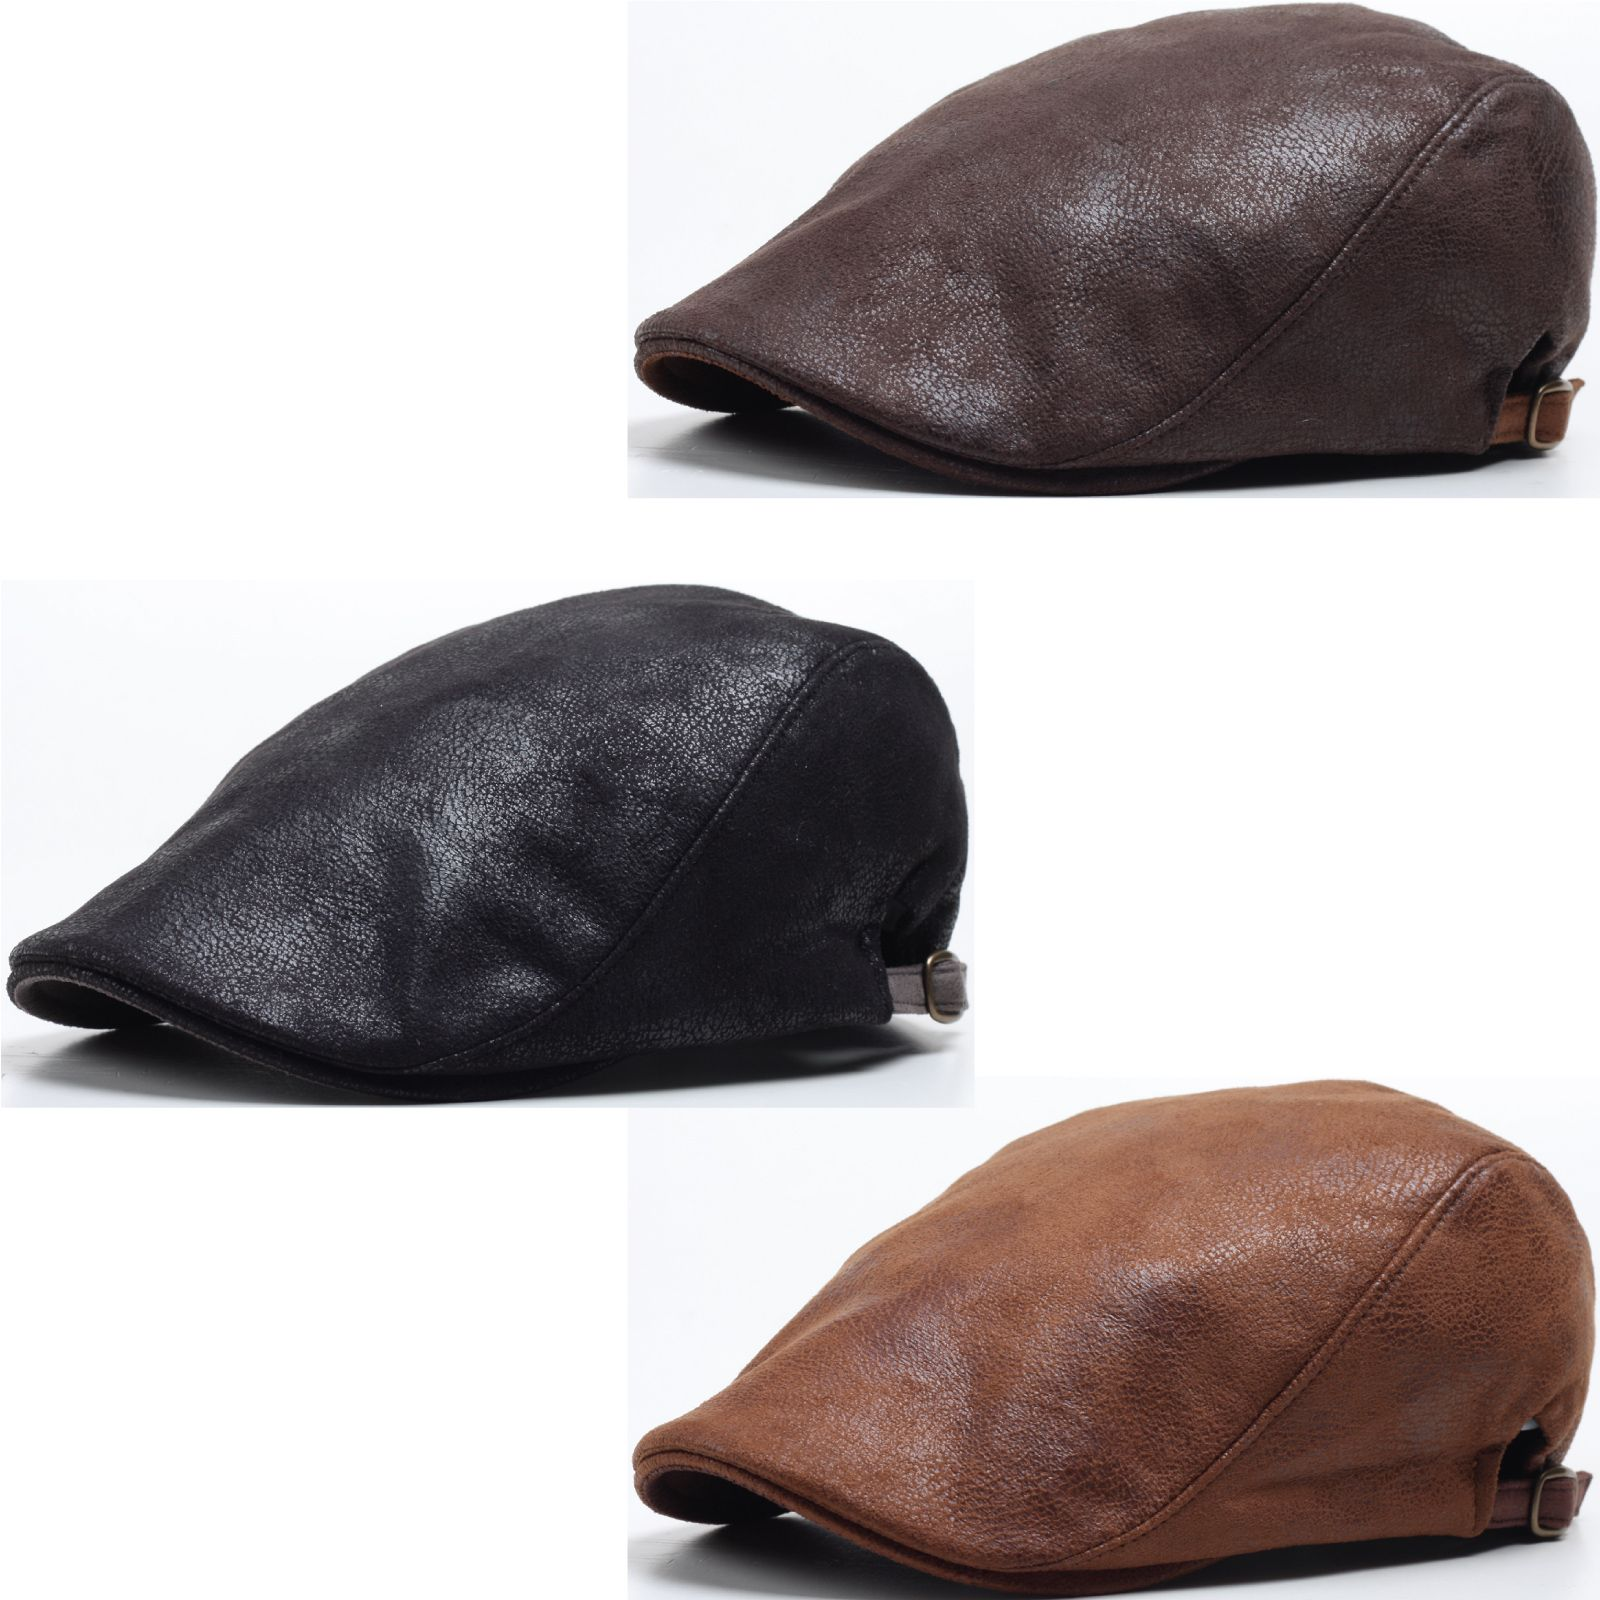 dd872c5338d N148 New Faux Leather Snake Skin Newsboy Ascot Golf Club Flat Ivy Cap  Gatsby Hat